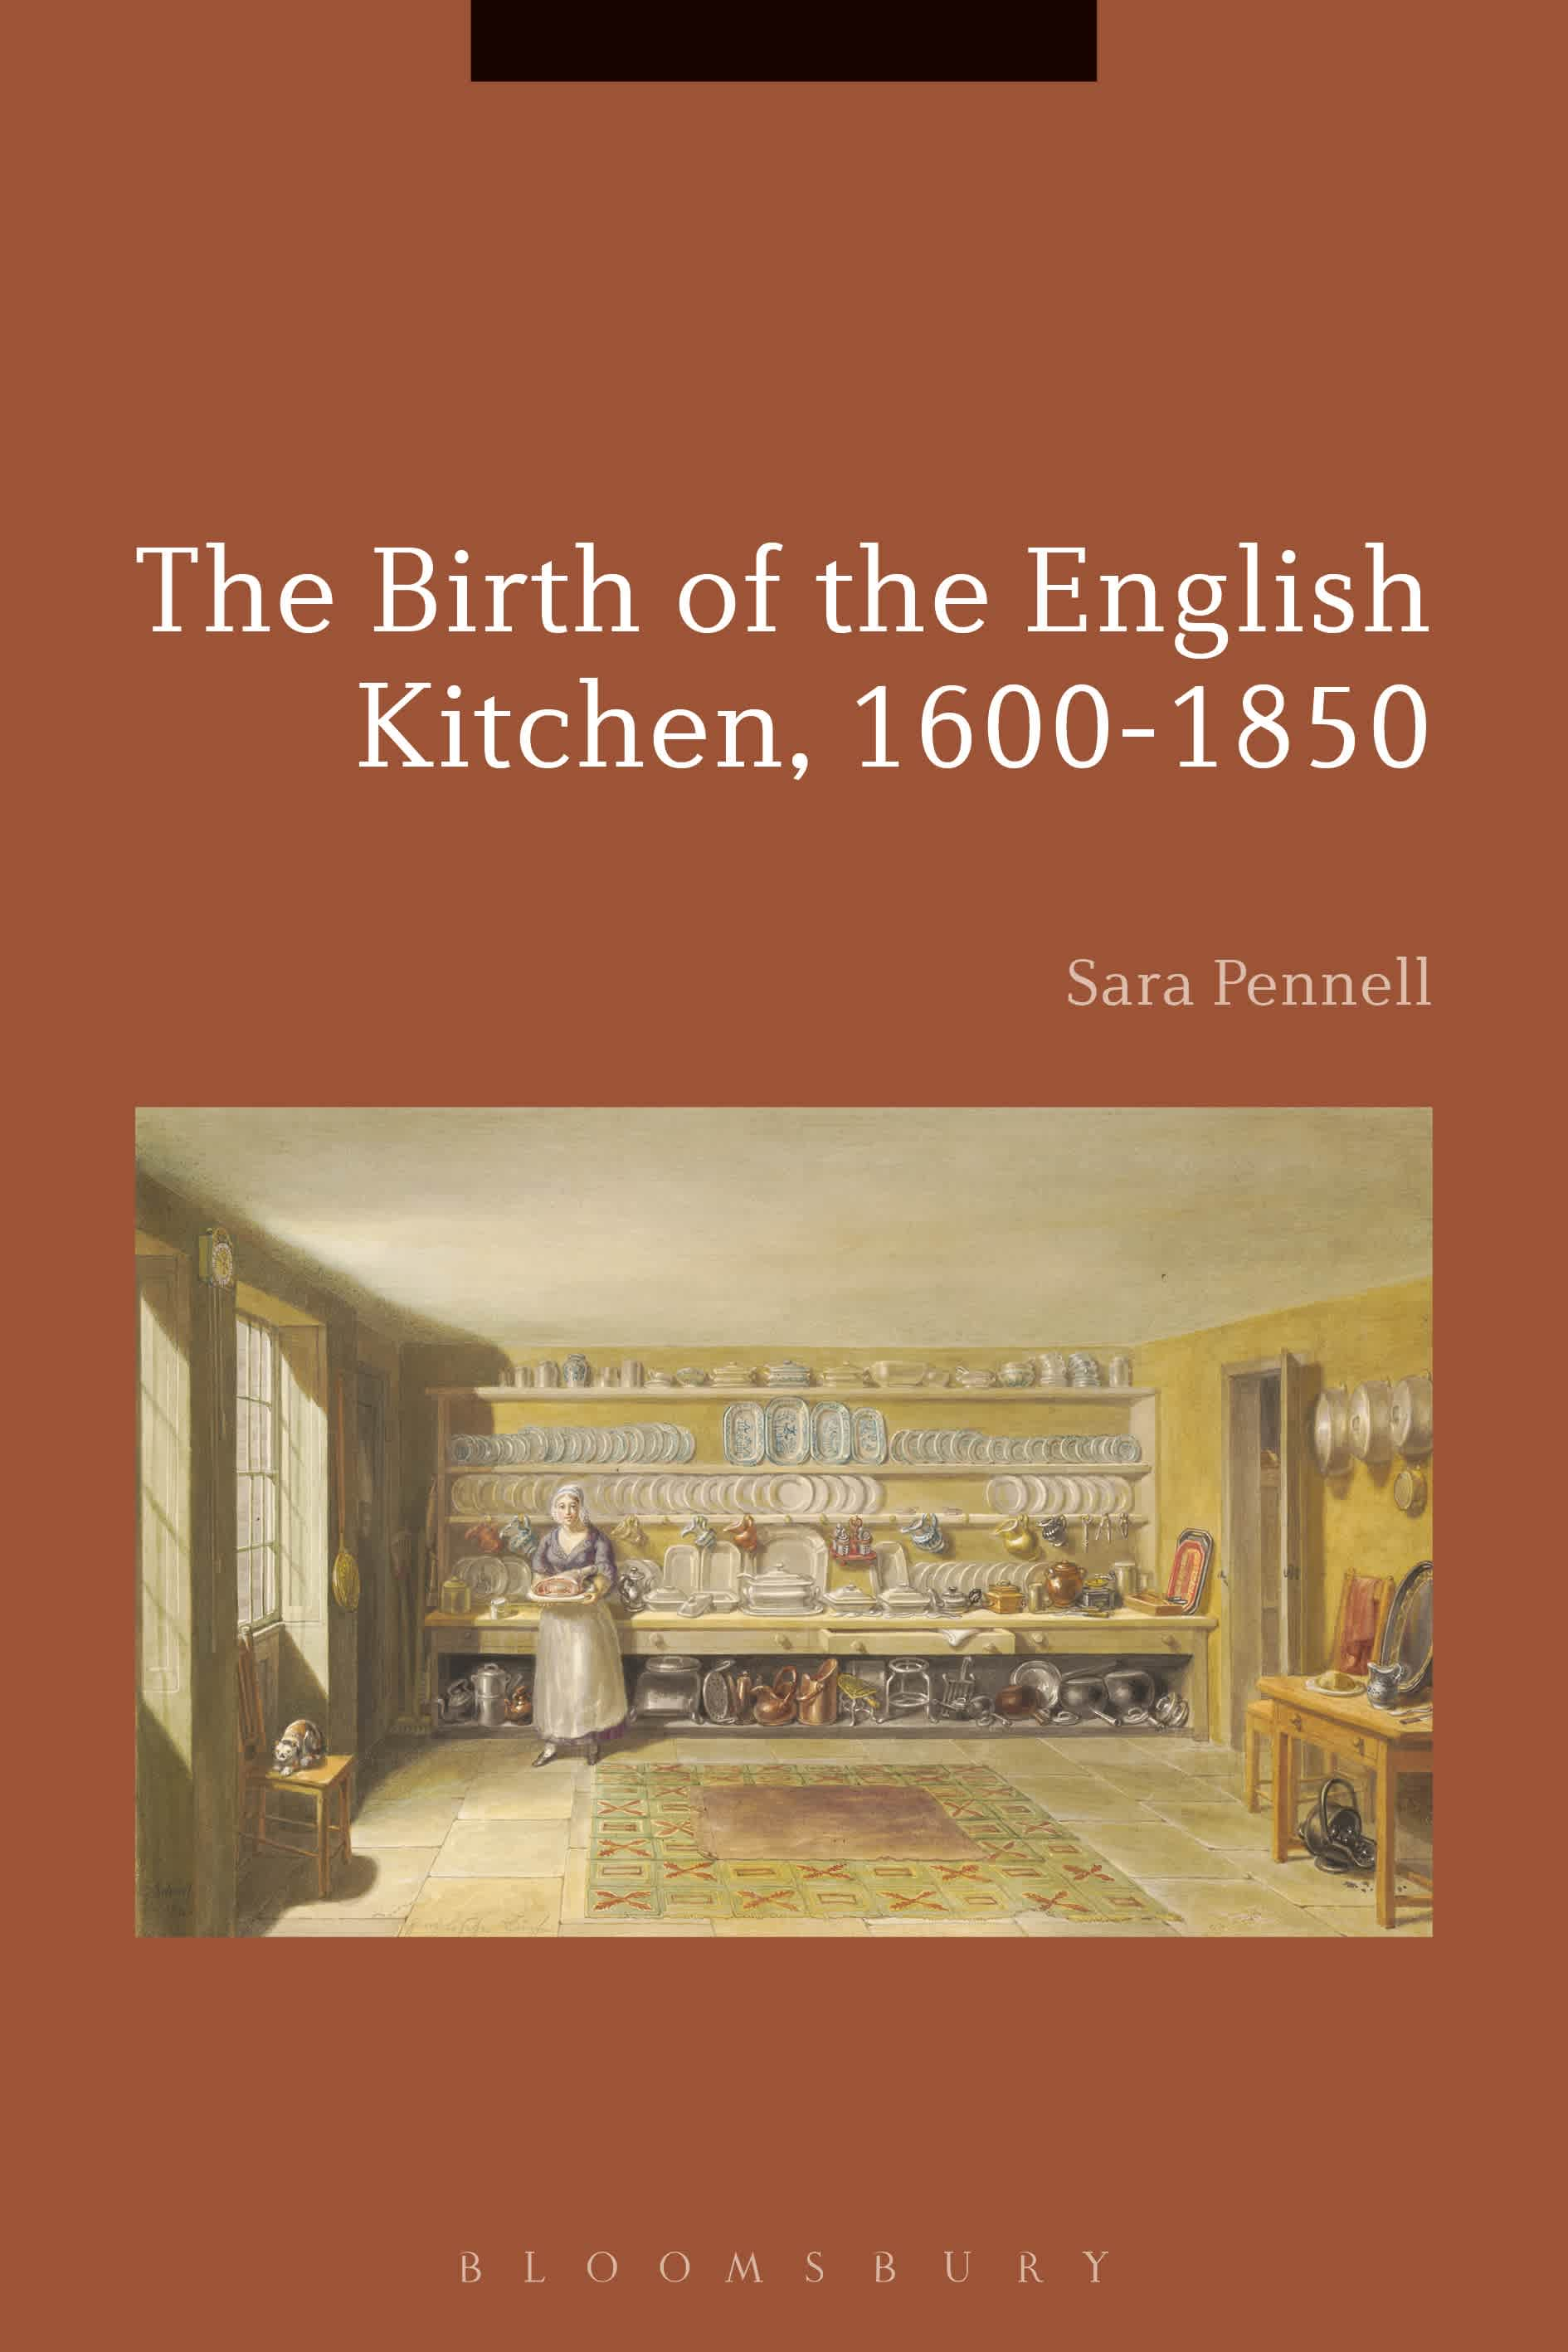 Bloomsbury cultural history ebooks the birth of the english kitchen 16001850 fandeluxe Gallery